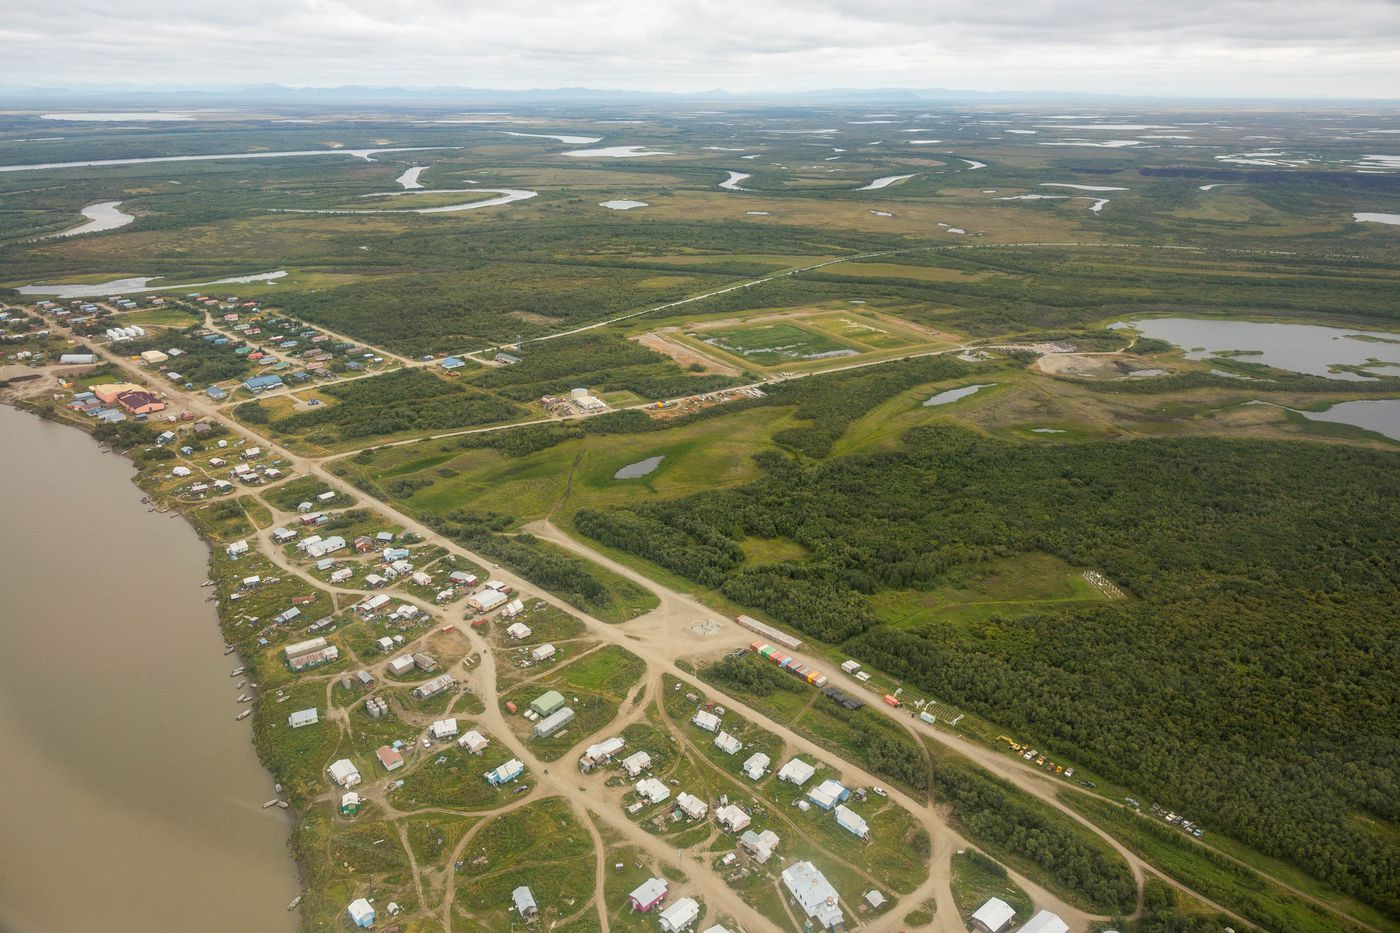 The Kwethluk skate park, visible in the lower center portion of this aerial photo, on Friday, August 7, 2015. The park, which was built with an Indian Health Services grant, is the only one of its kind in a small rural Alaska village. (Loren Holmes / ADN)